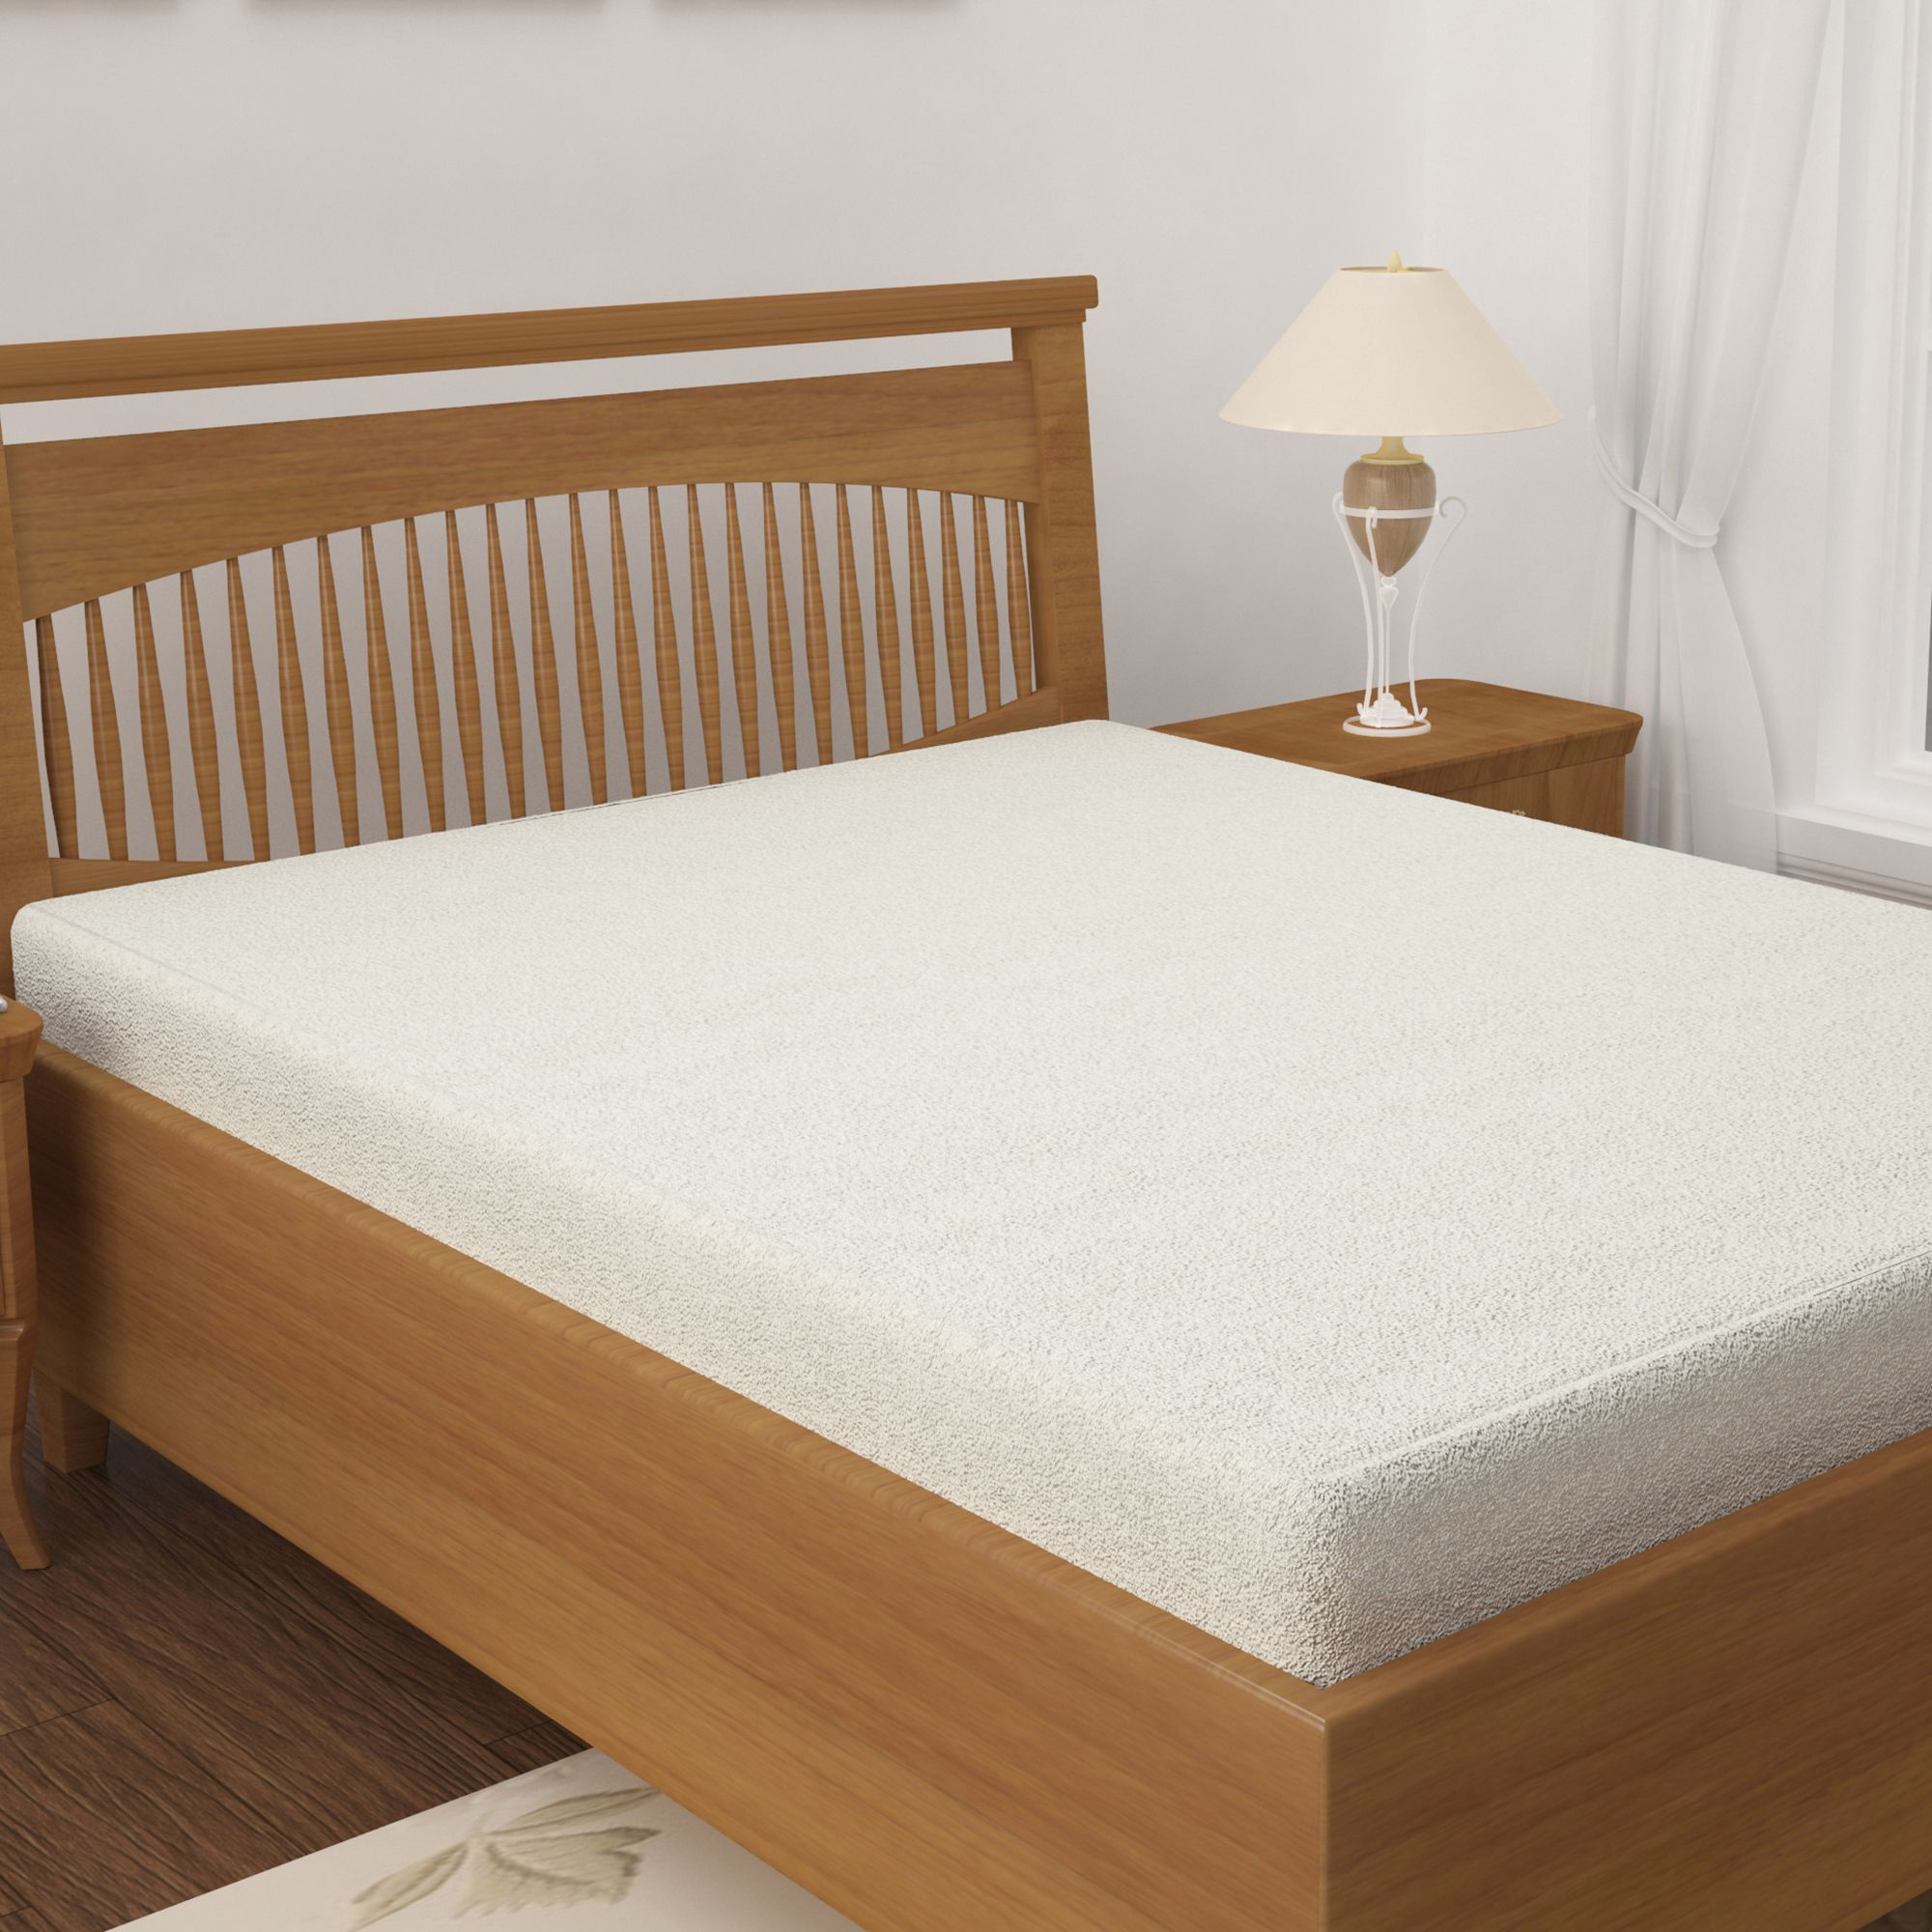 Story@Home White Cotton Mattress Protector